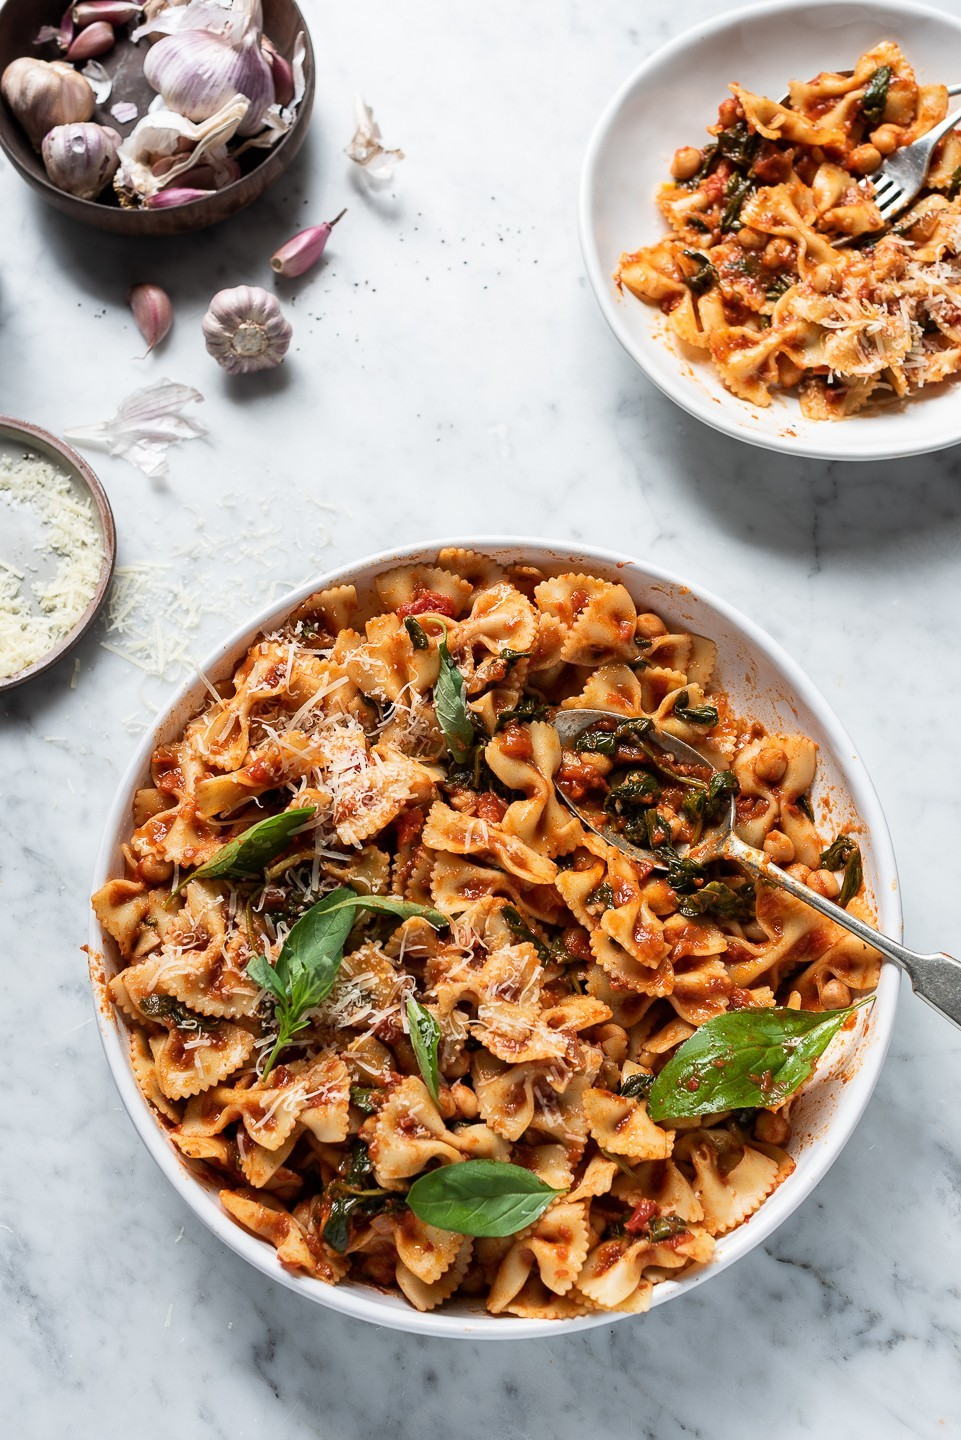 Bowtie spinach and chickpea pasta